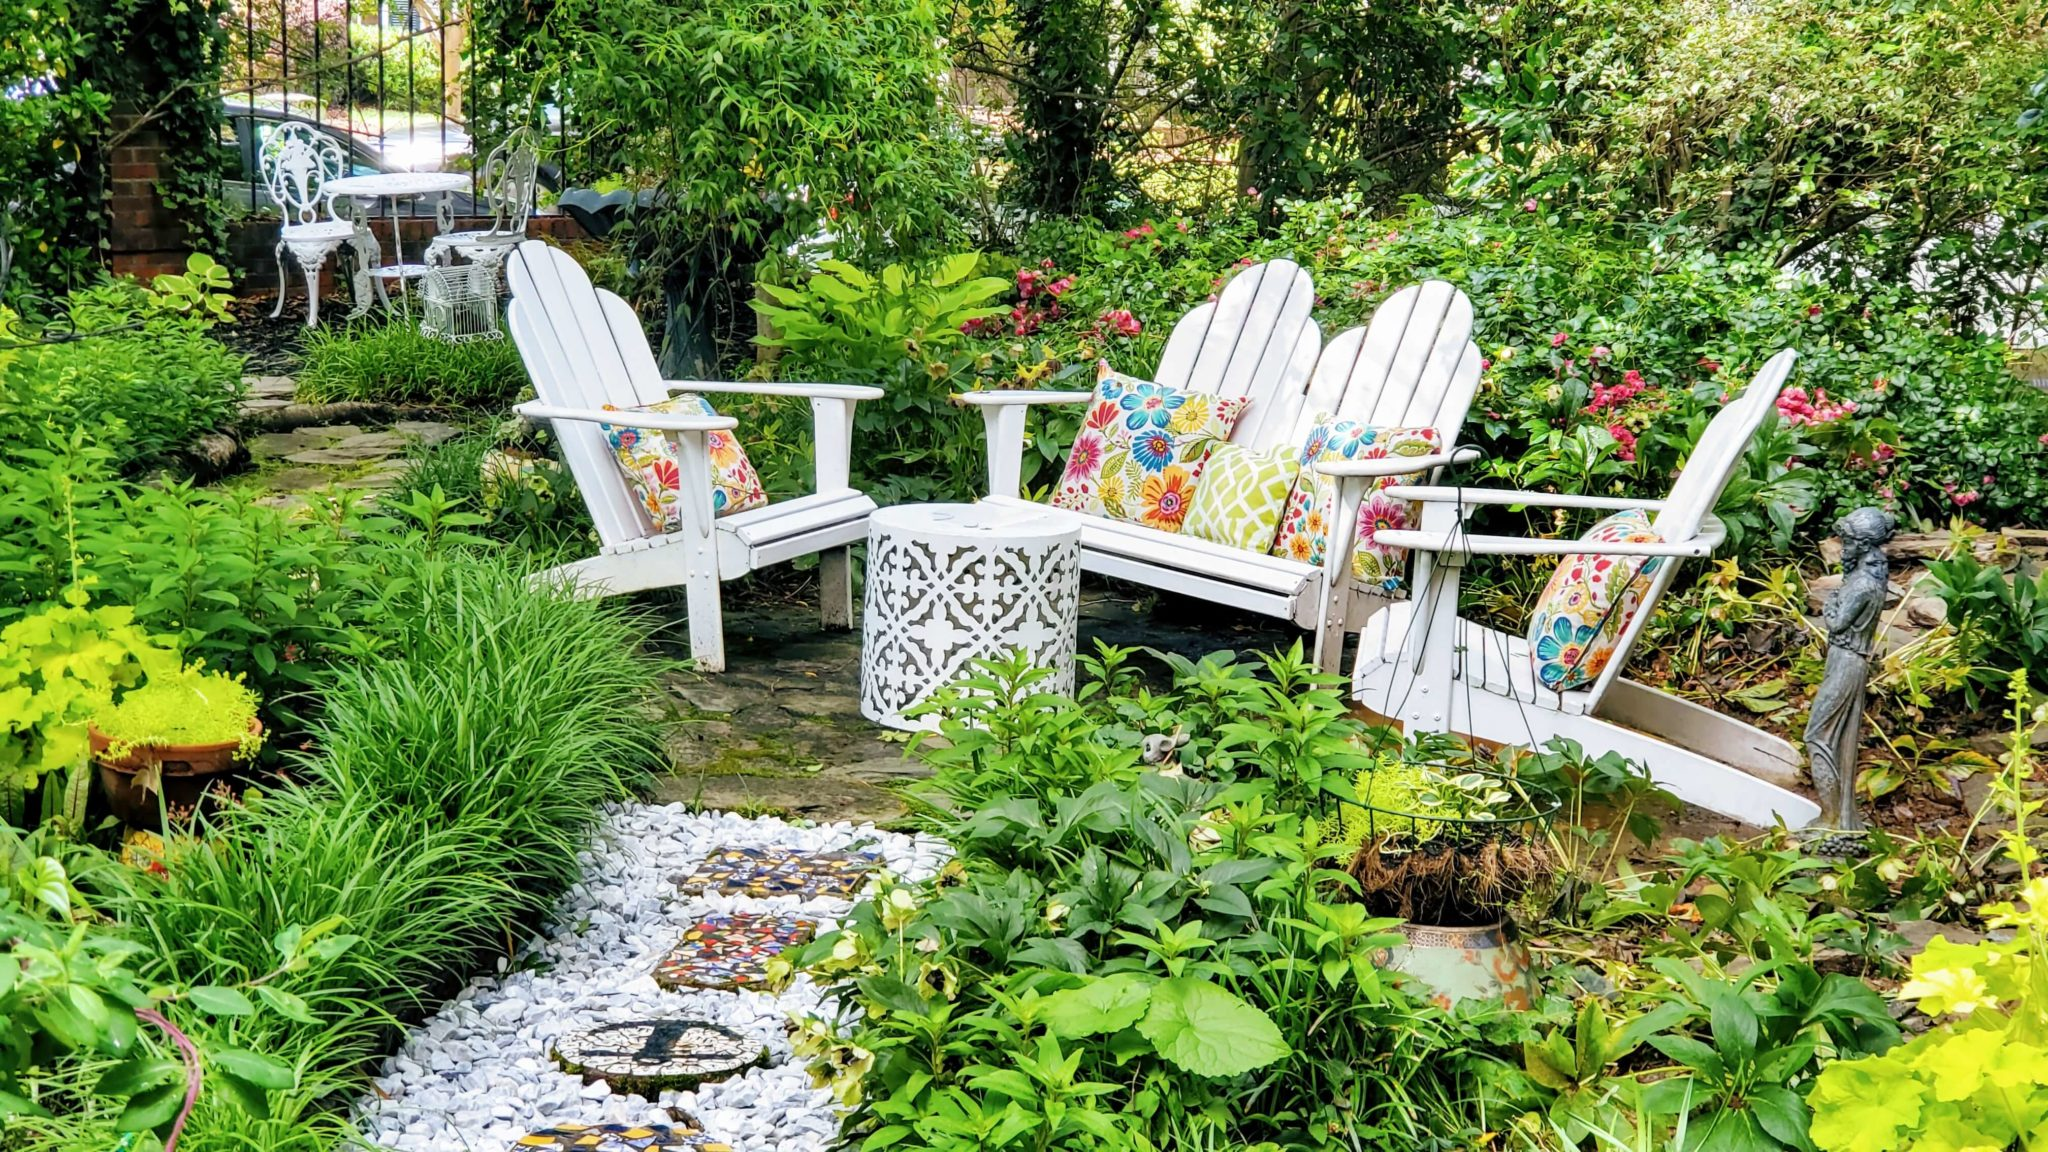 Adirondack chairs in english garden with chipped marble stone pathway.